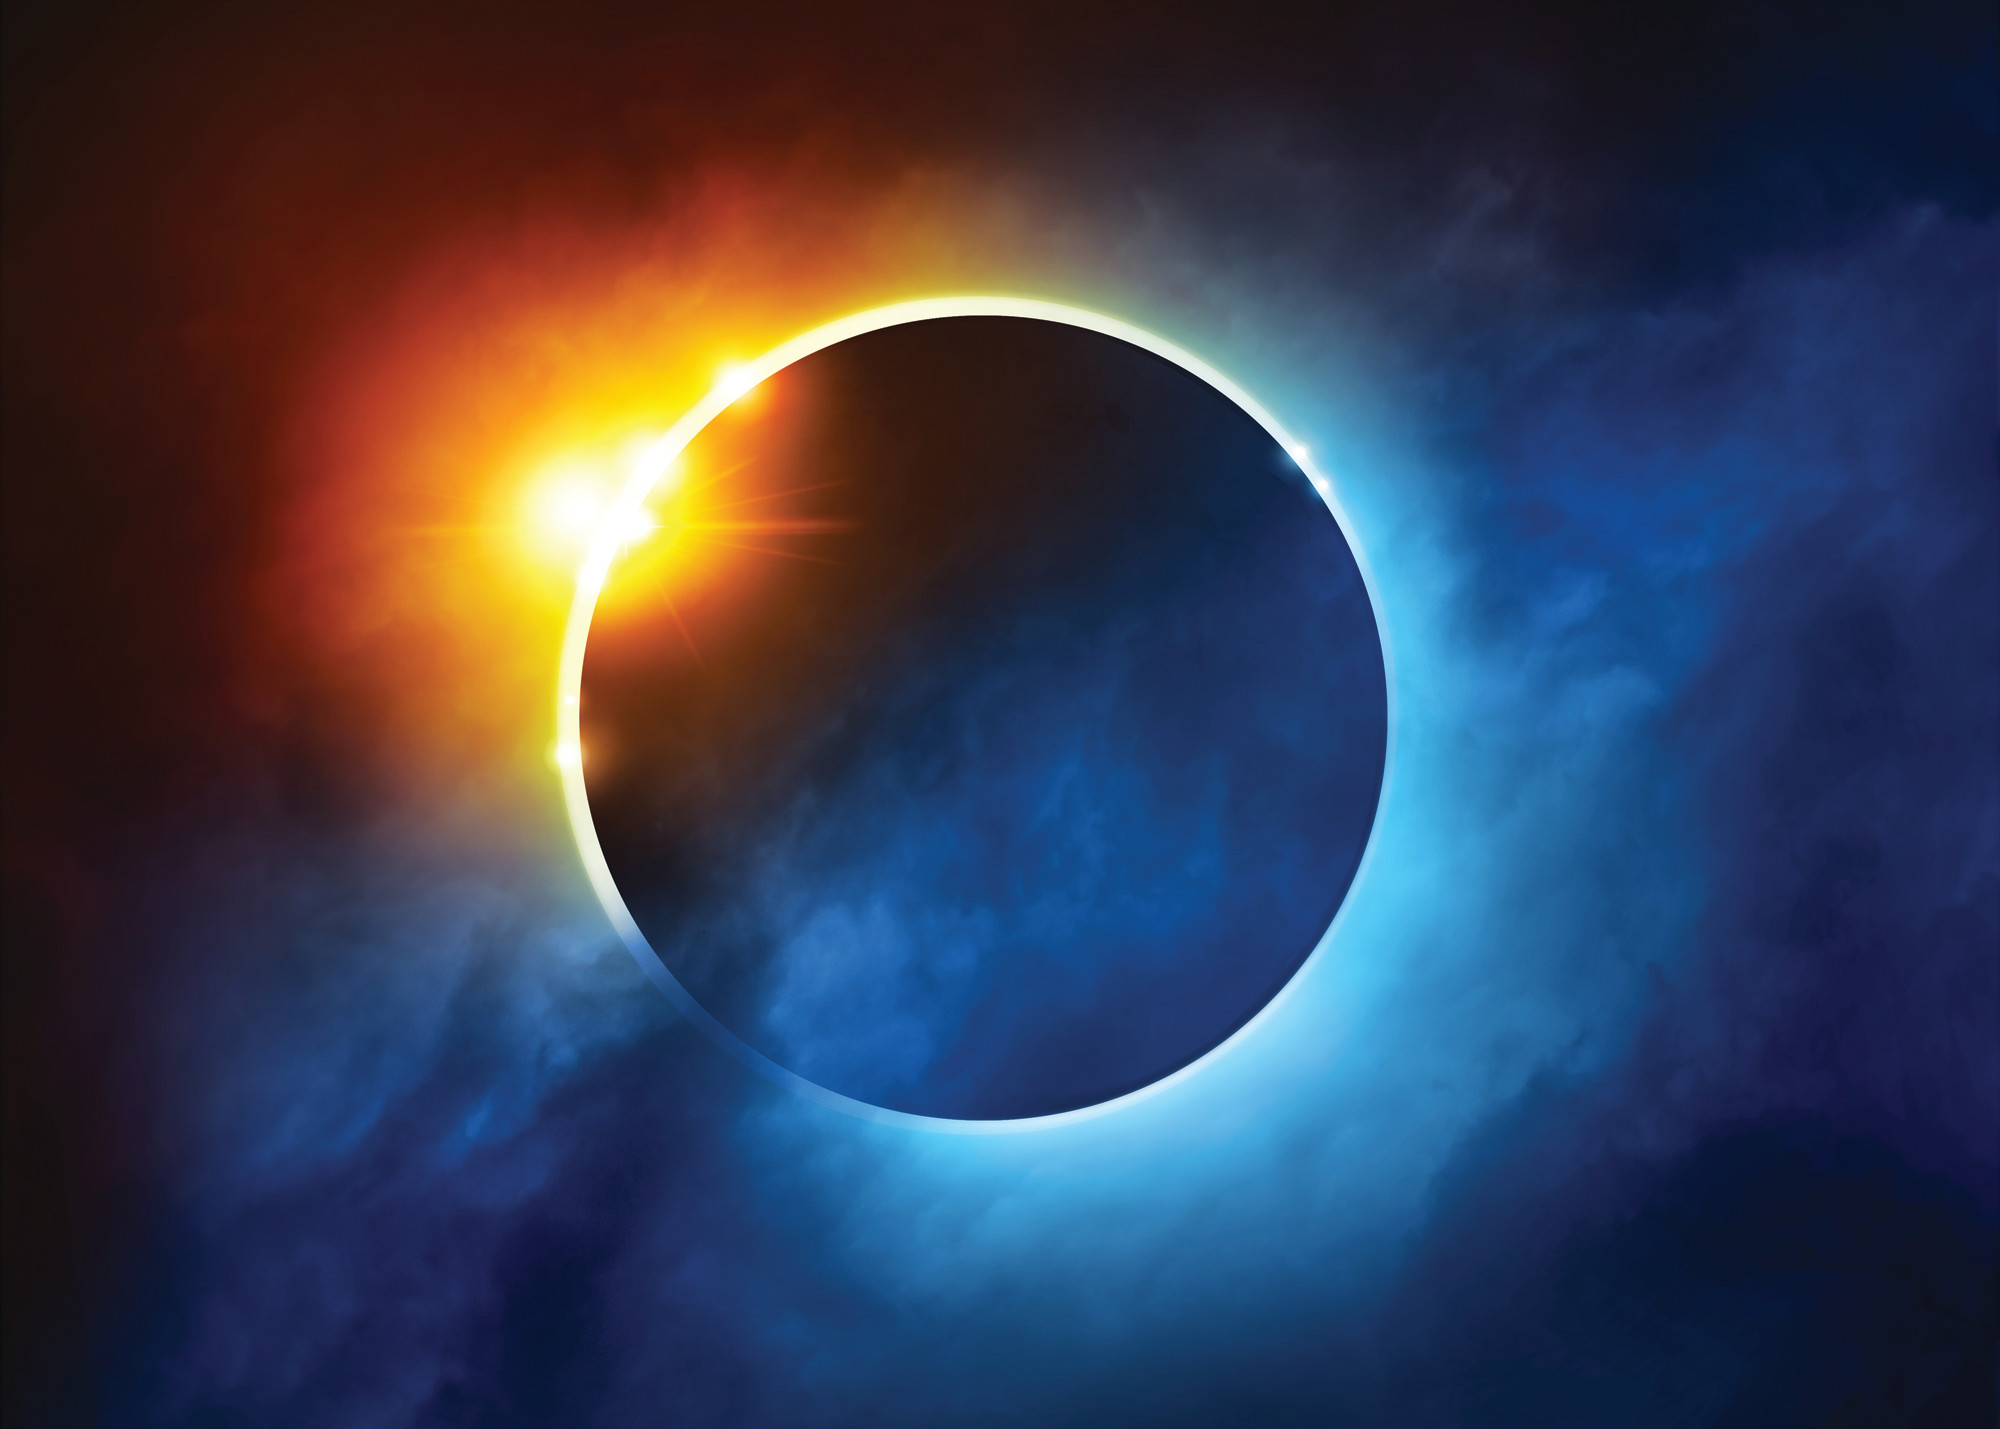 In our area in Northwest Austin, we will be able to observe a partial solar eclipse.